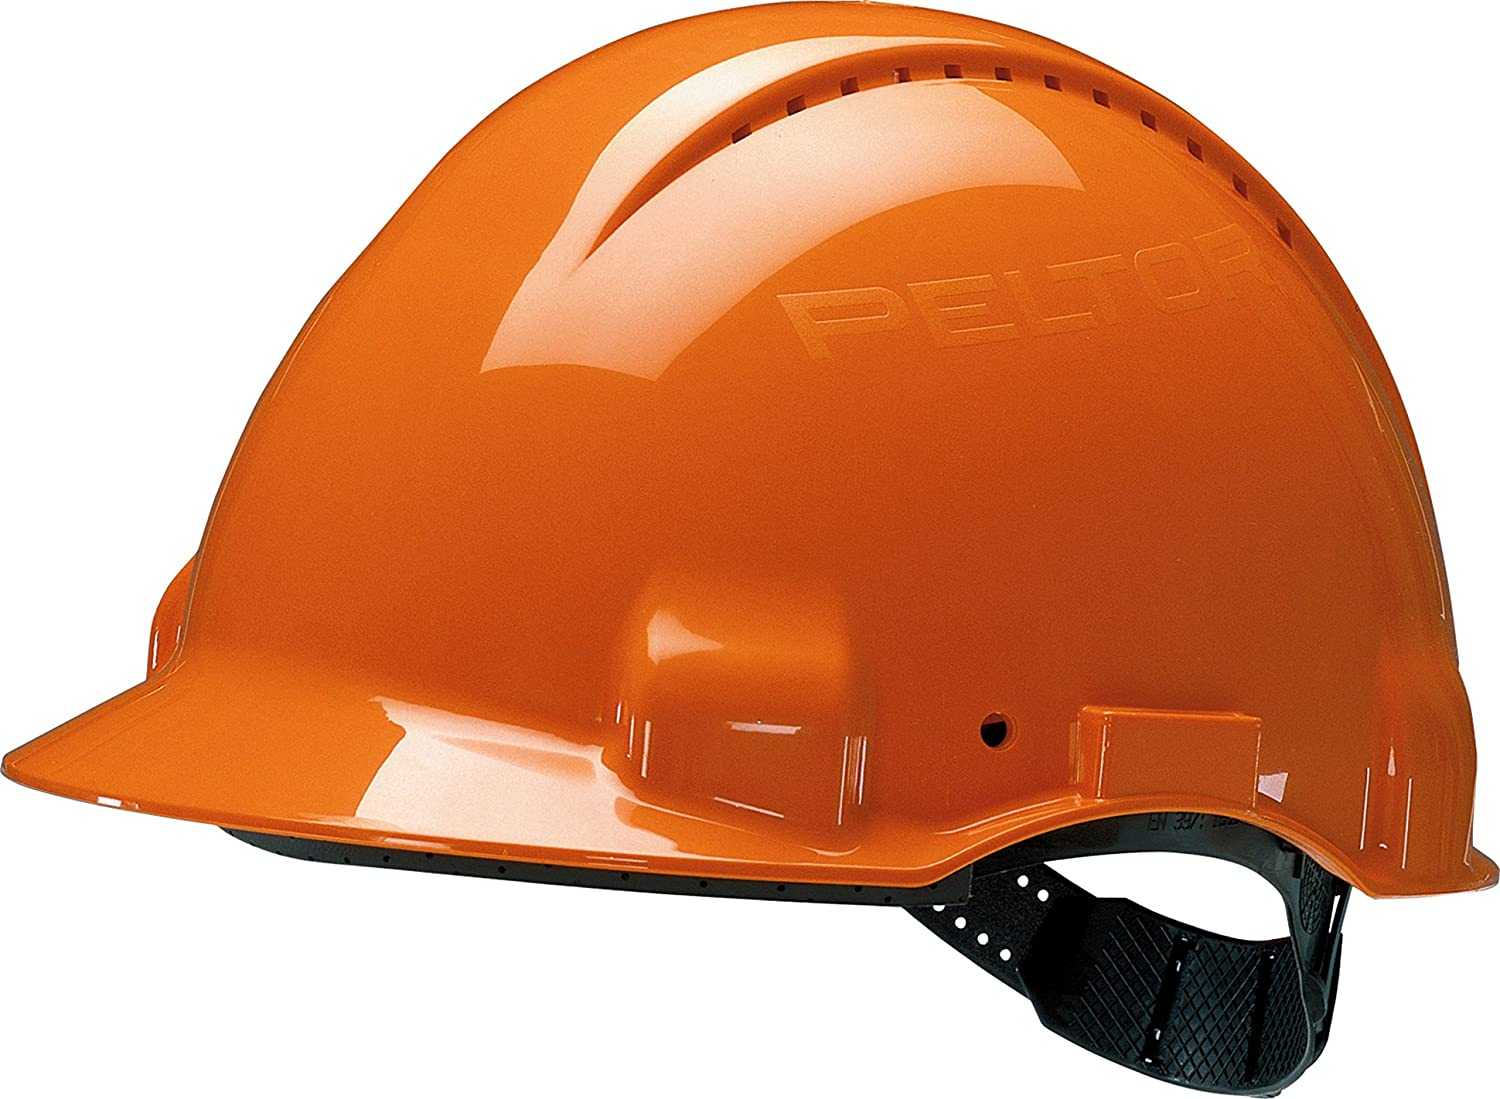 3M Hard Hat, Uvicator, Pinlock, Ventilated, Orange, G3000CUV-OR XH001674734